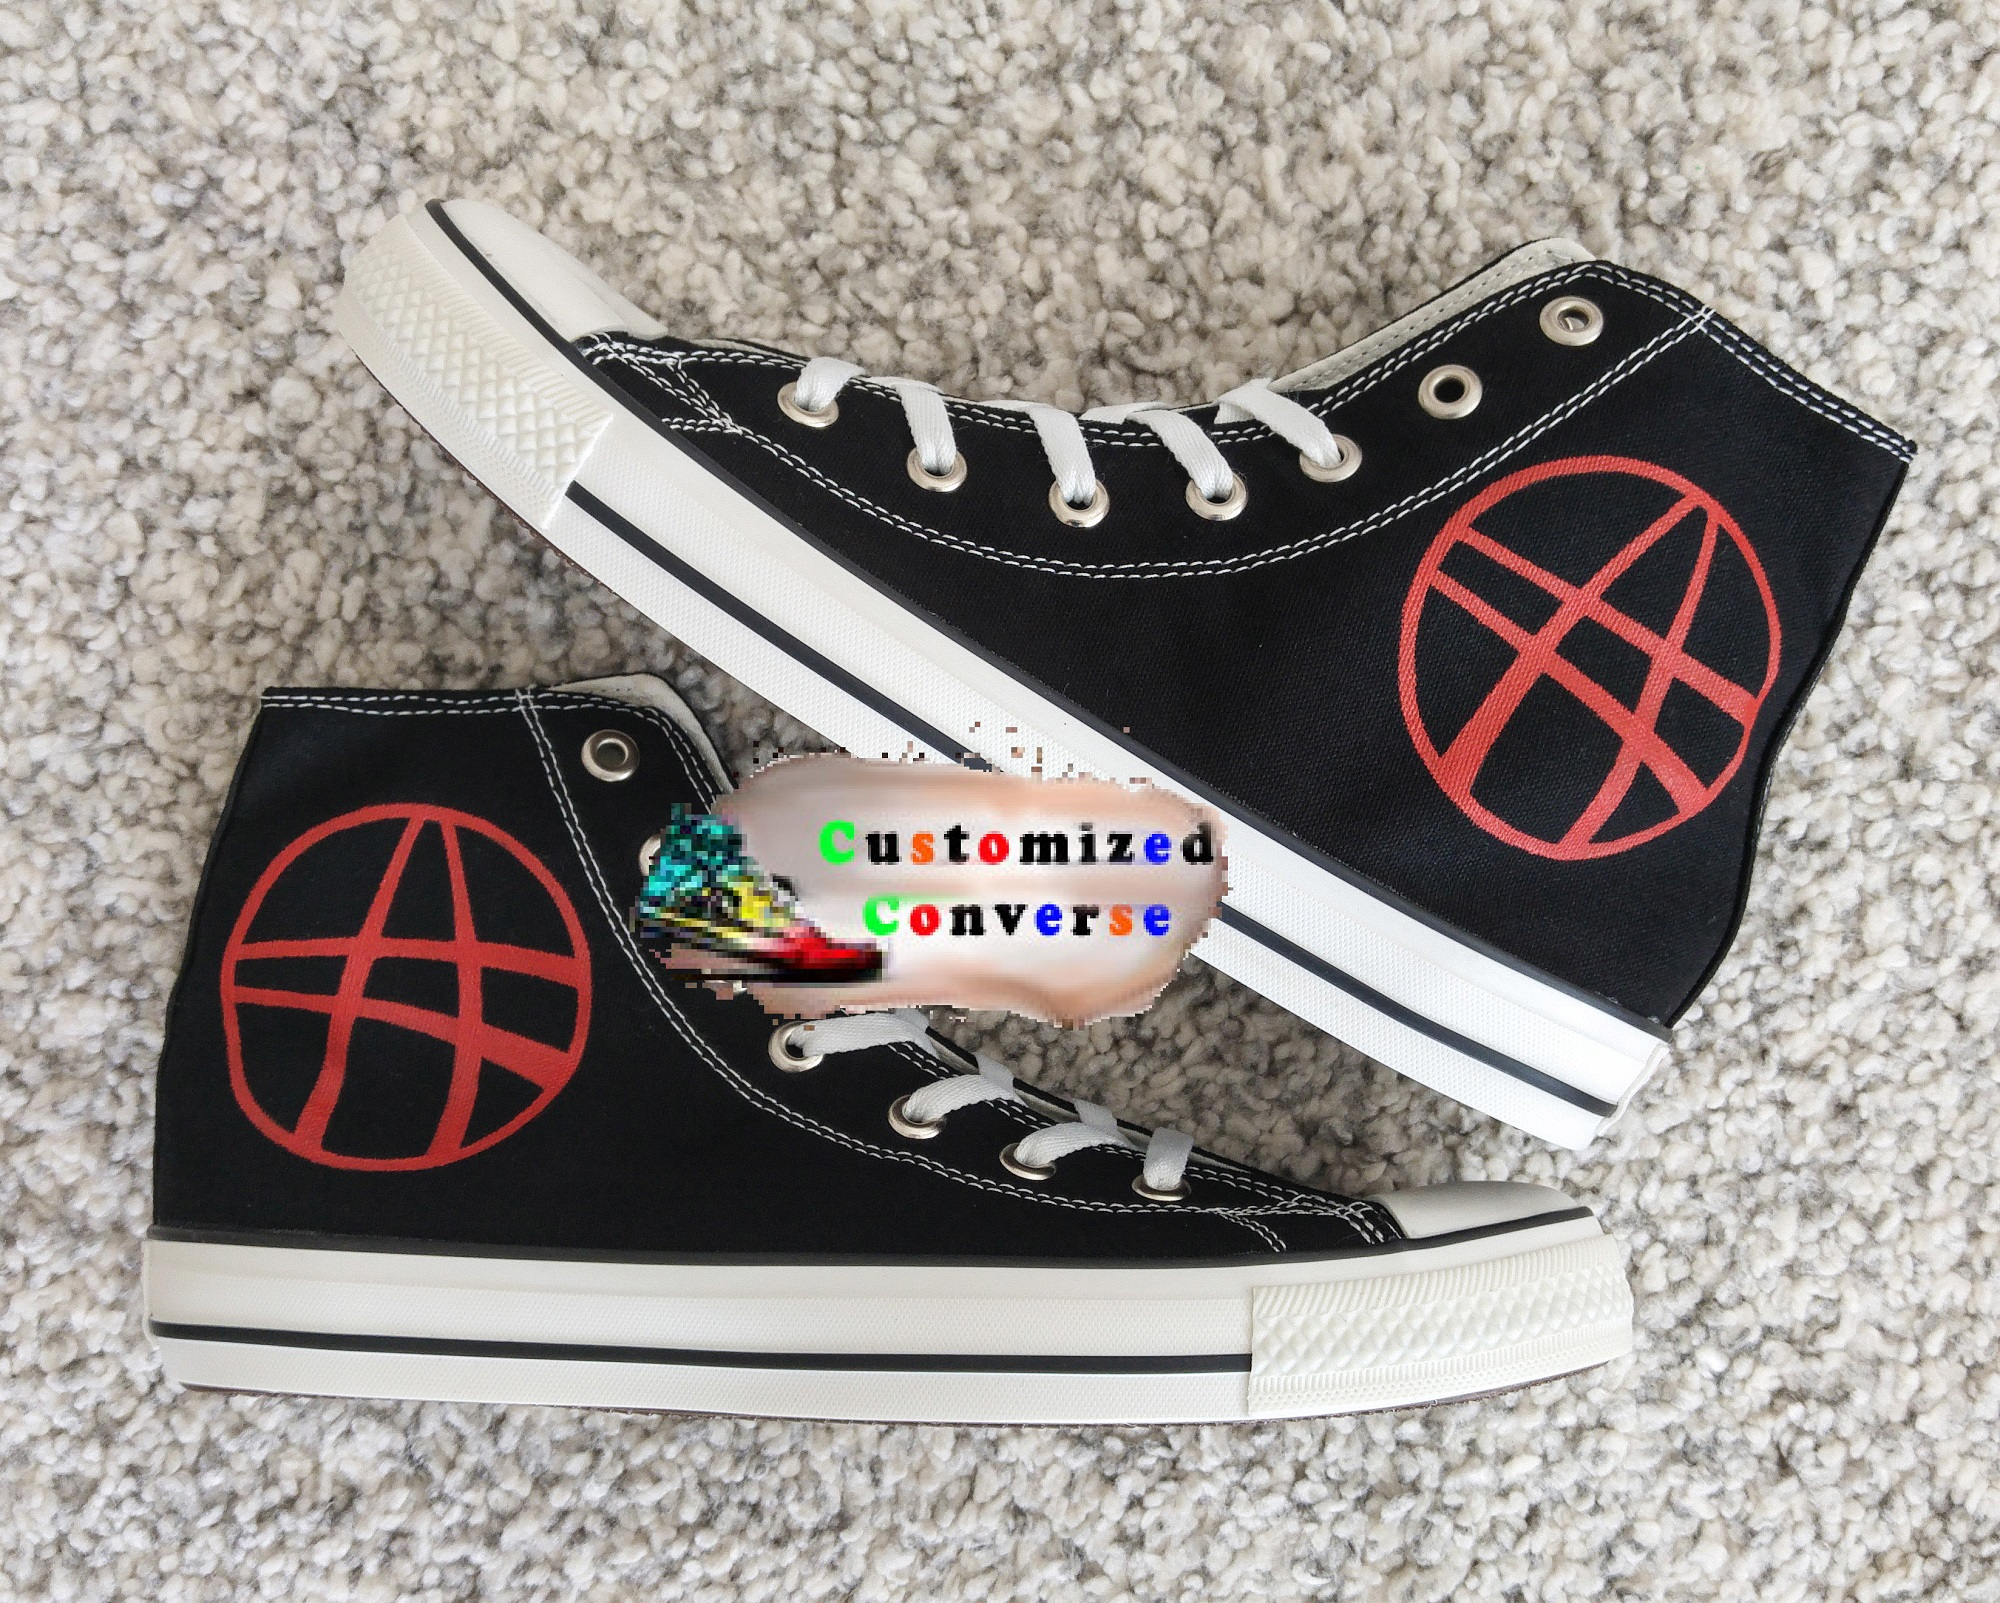 2ee53cd33516 Doctor Strange Shoes - converse shoes - custom converse - customized  converse